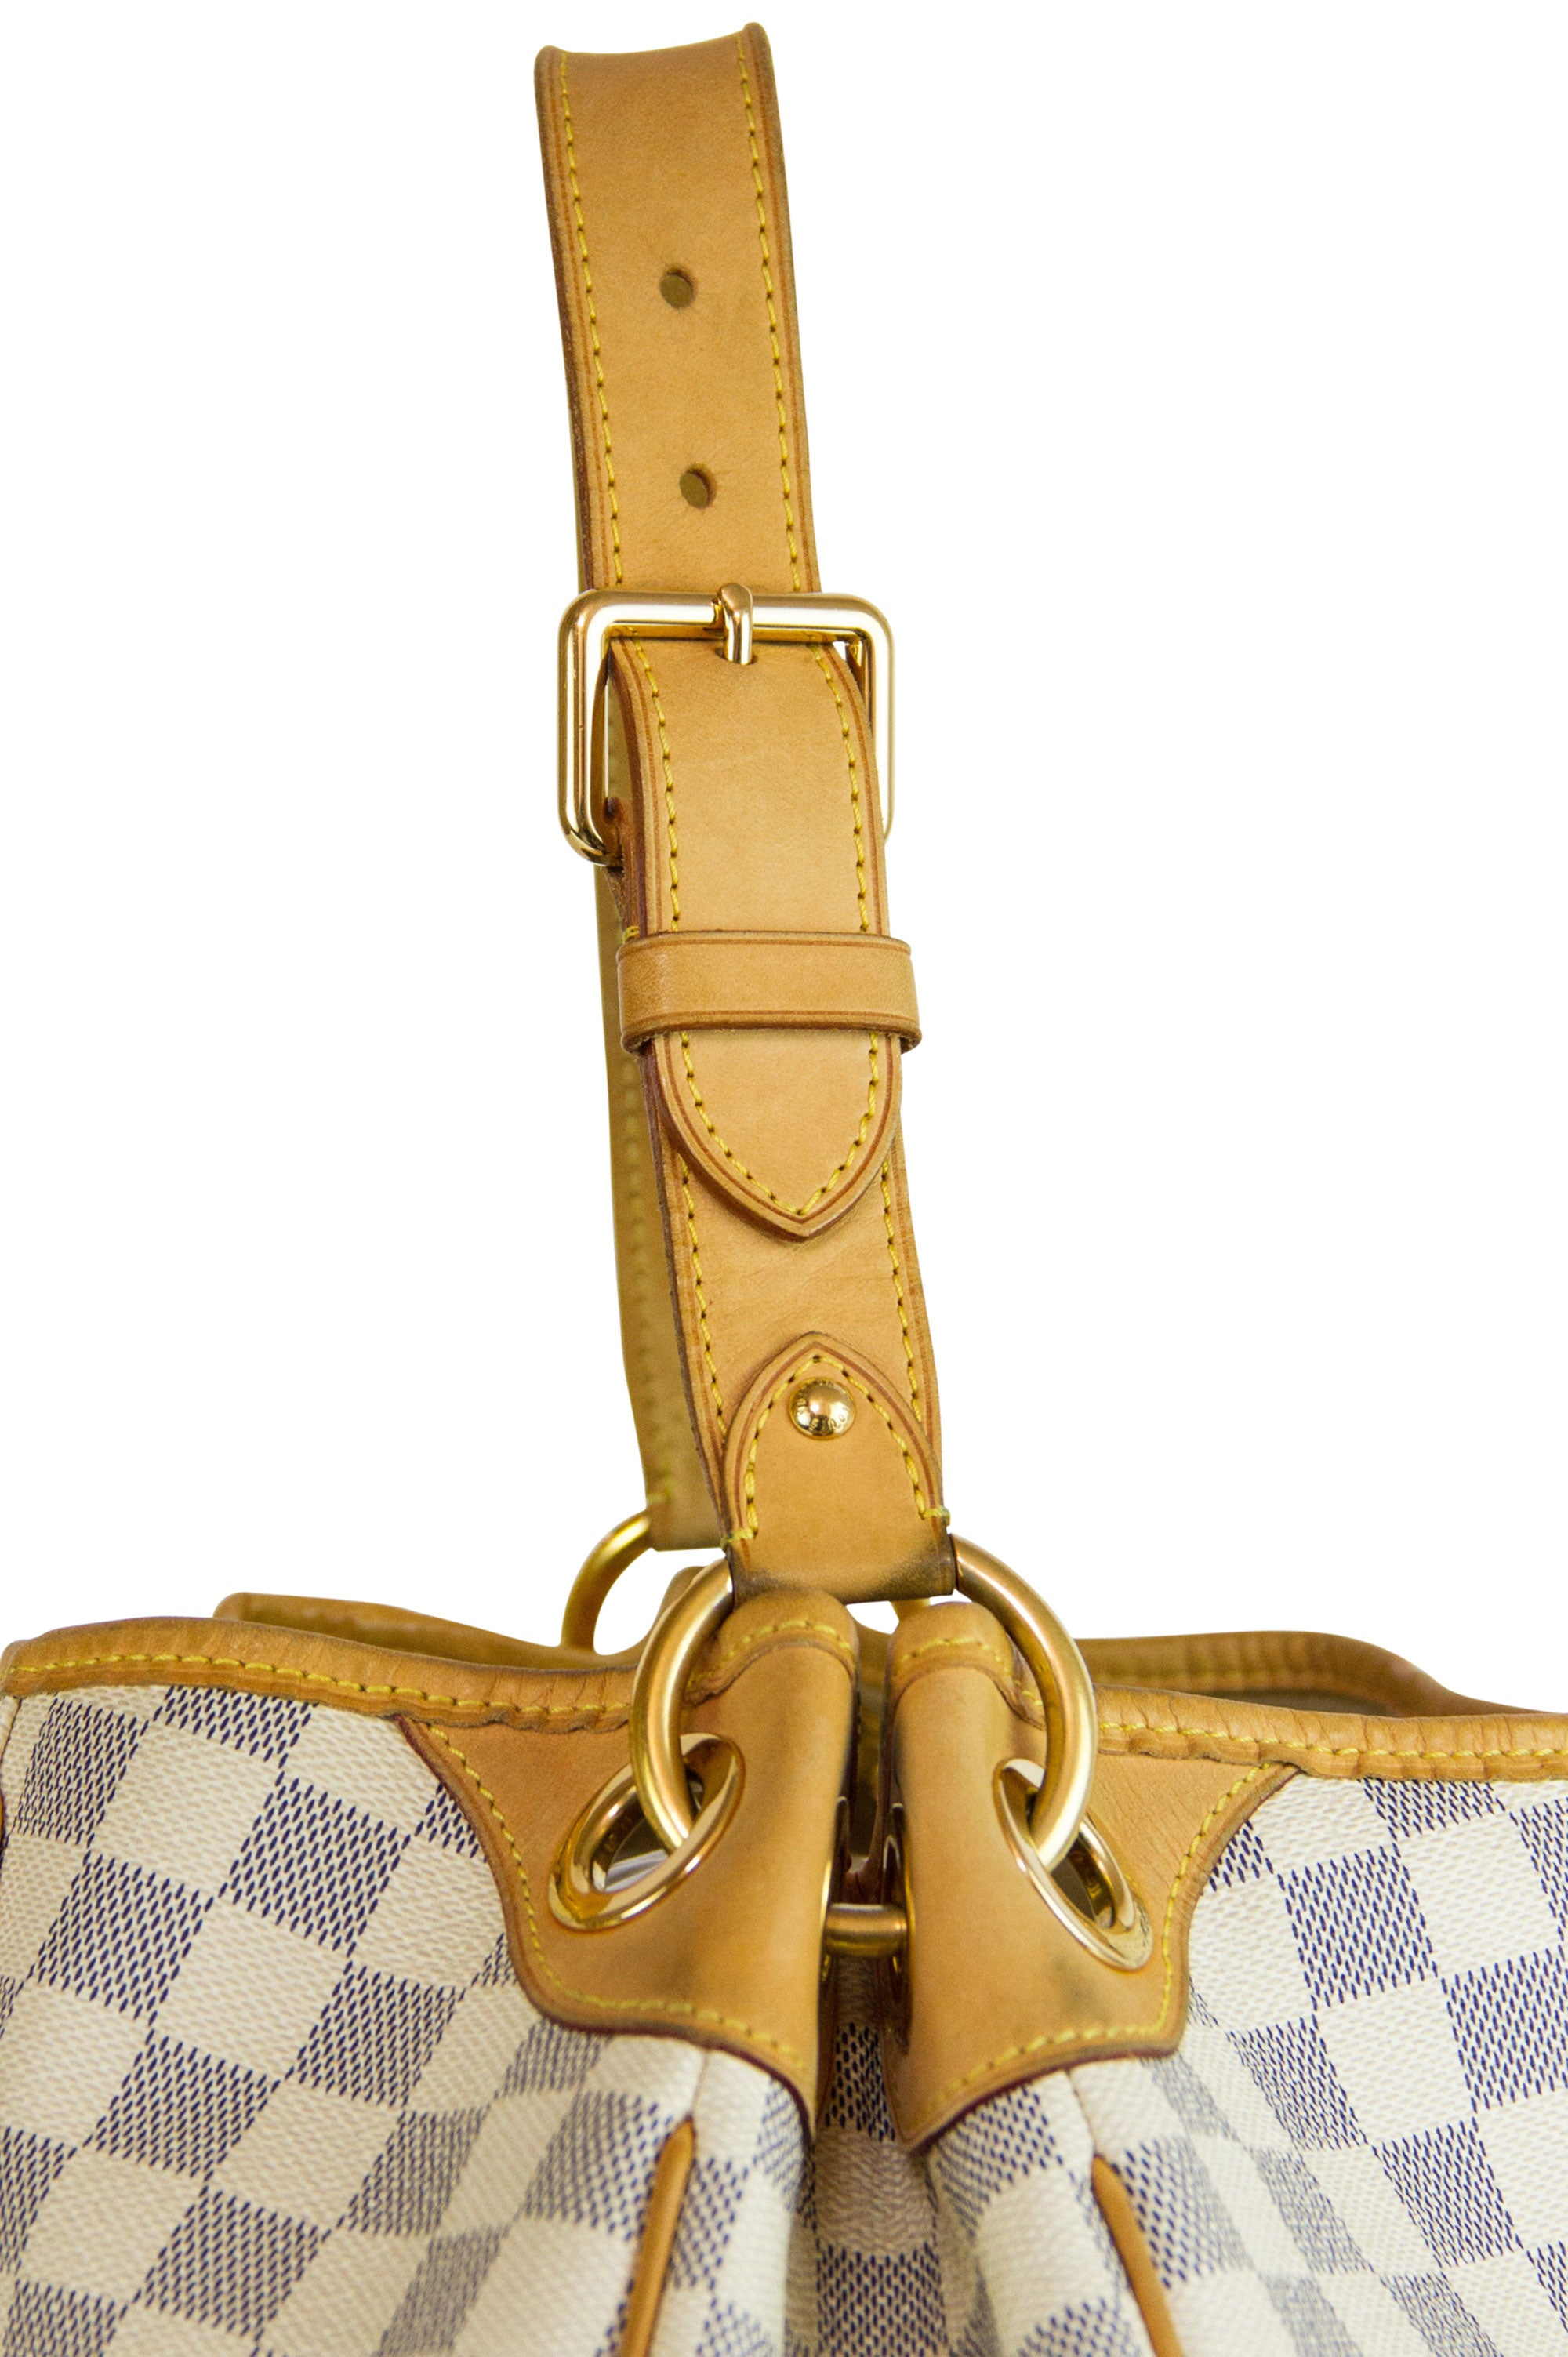 LOUIS VUITTON Damier Azur Galliera Bag